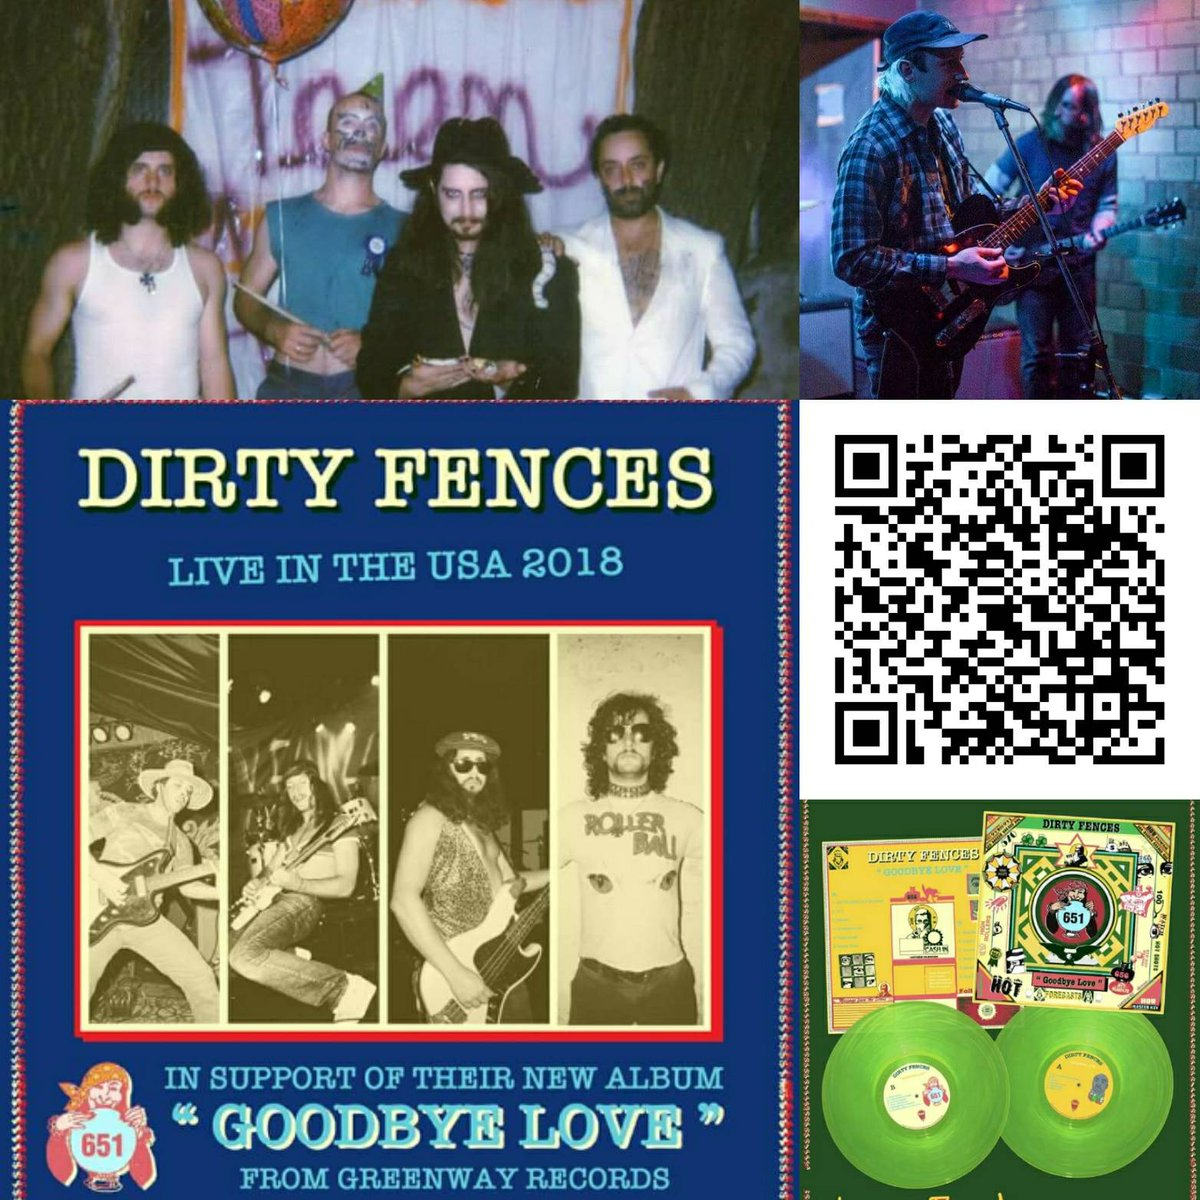 Saint Louis Musicians Unite Goodbye Love Dirtyfencesnyc W Wiring Harness Alligator Fence On Thursday February 1st The Sinkhole Will Have Dirty Fences Nyc As They Bring Power Pop Punk Show To St In Support Of Their New Album